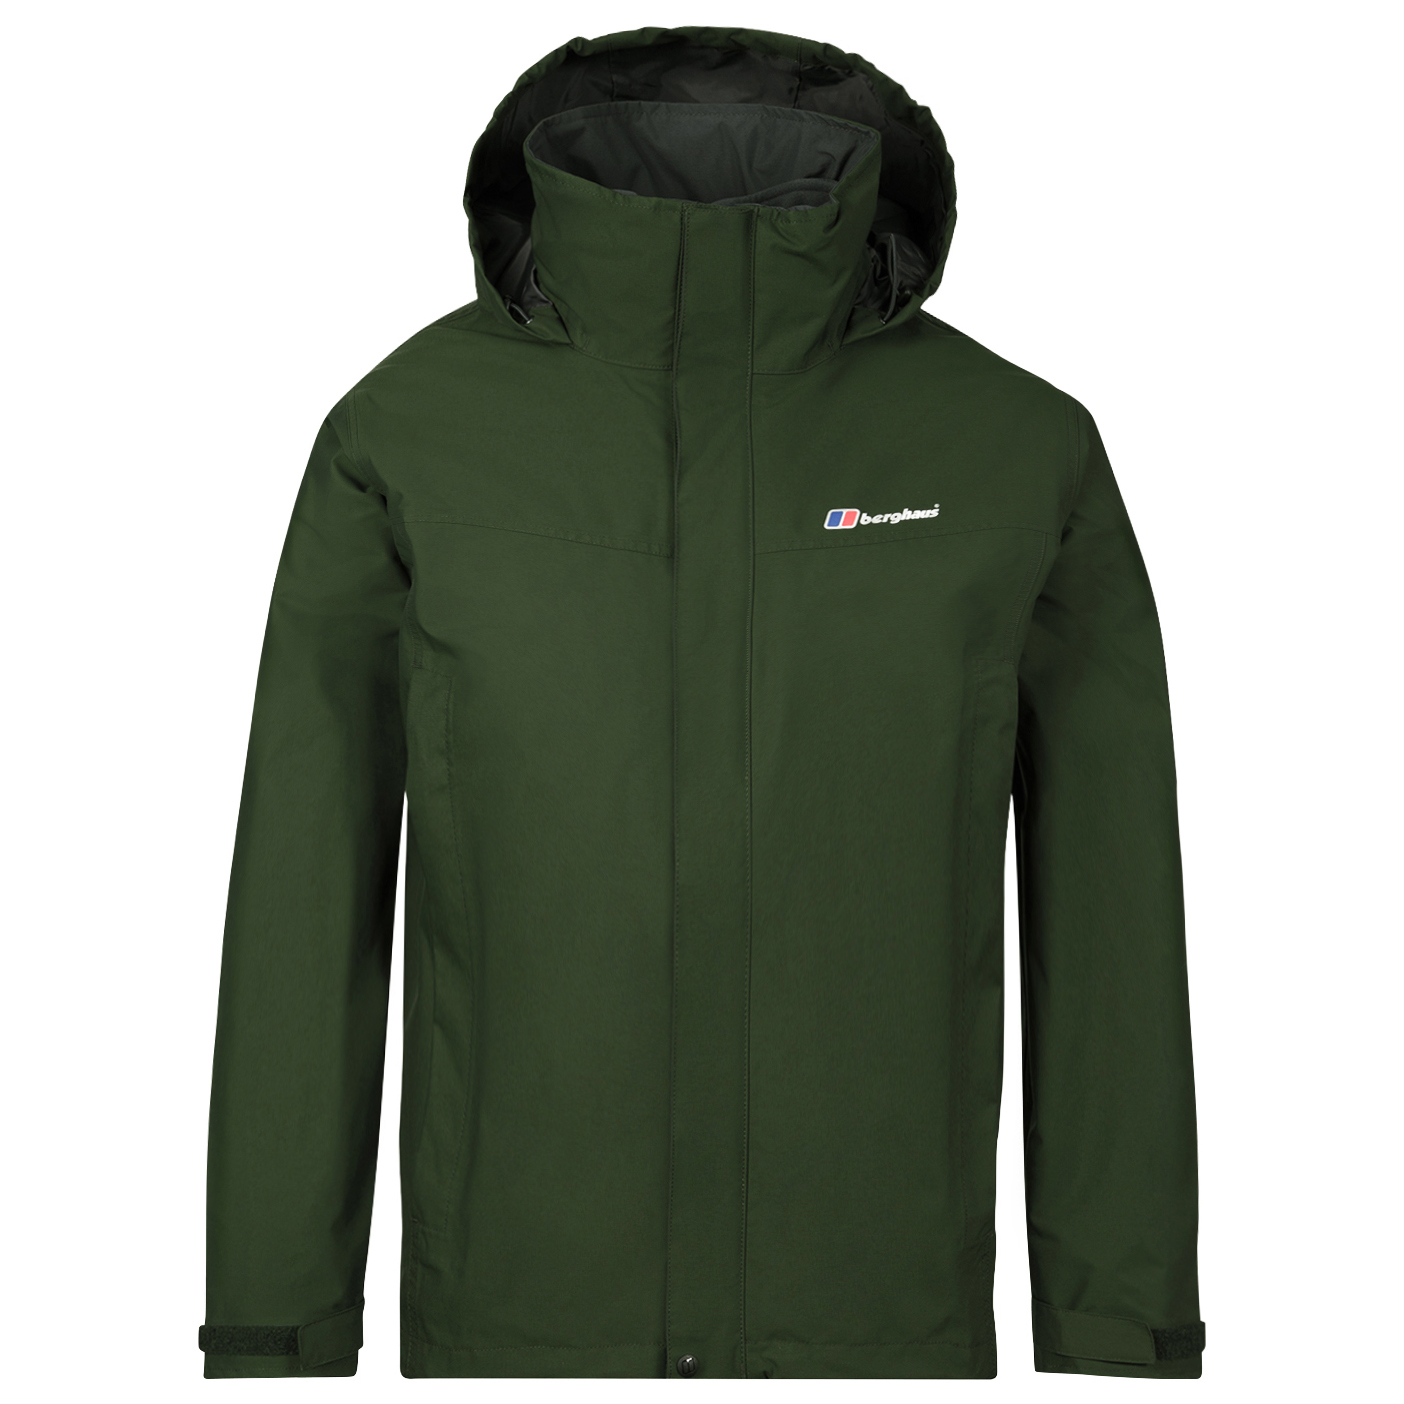 f288109992e Berghaus - RG Alpha Gemini 3in1 Jacket - Waterproof jacket - Eclipse /  Eclipse | S